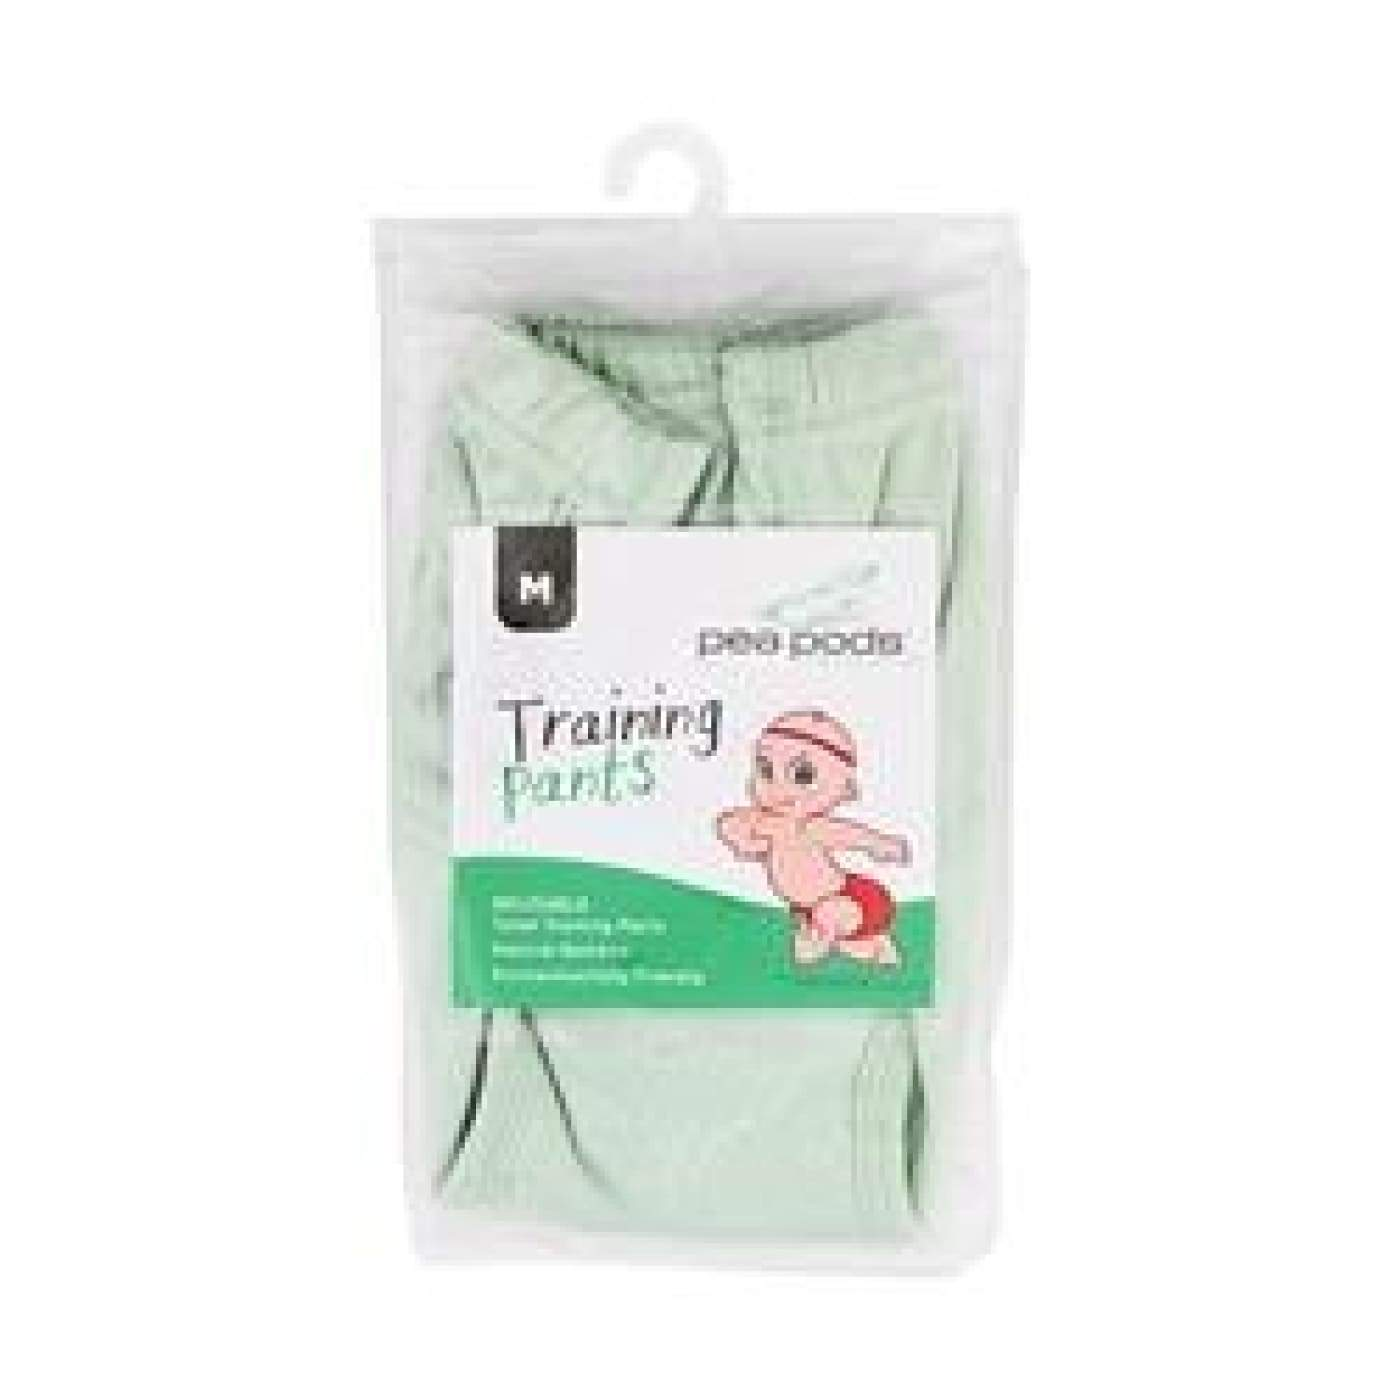 Pea Pods Training Pants Small - Pea Green - BATHTIME & CHANGING - NAPPIES/WIPES/ACC ECO RANGE